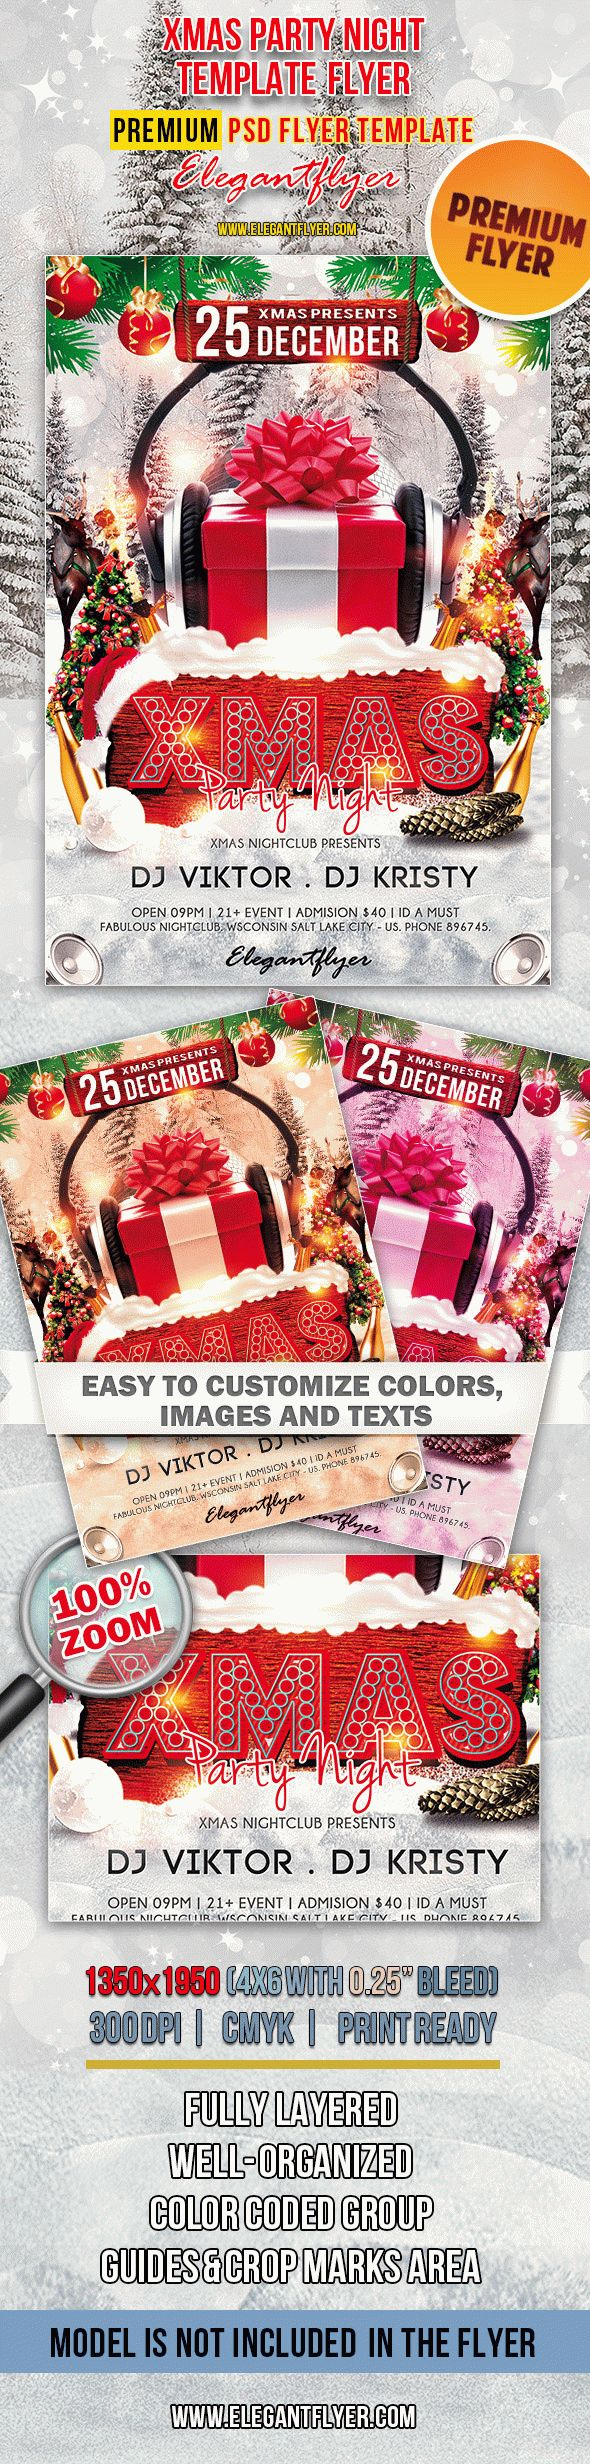 Xmas Party Night – Premium Club flyer PSD Template